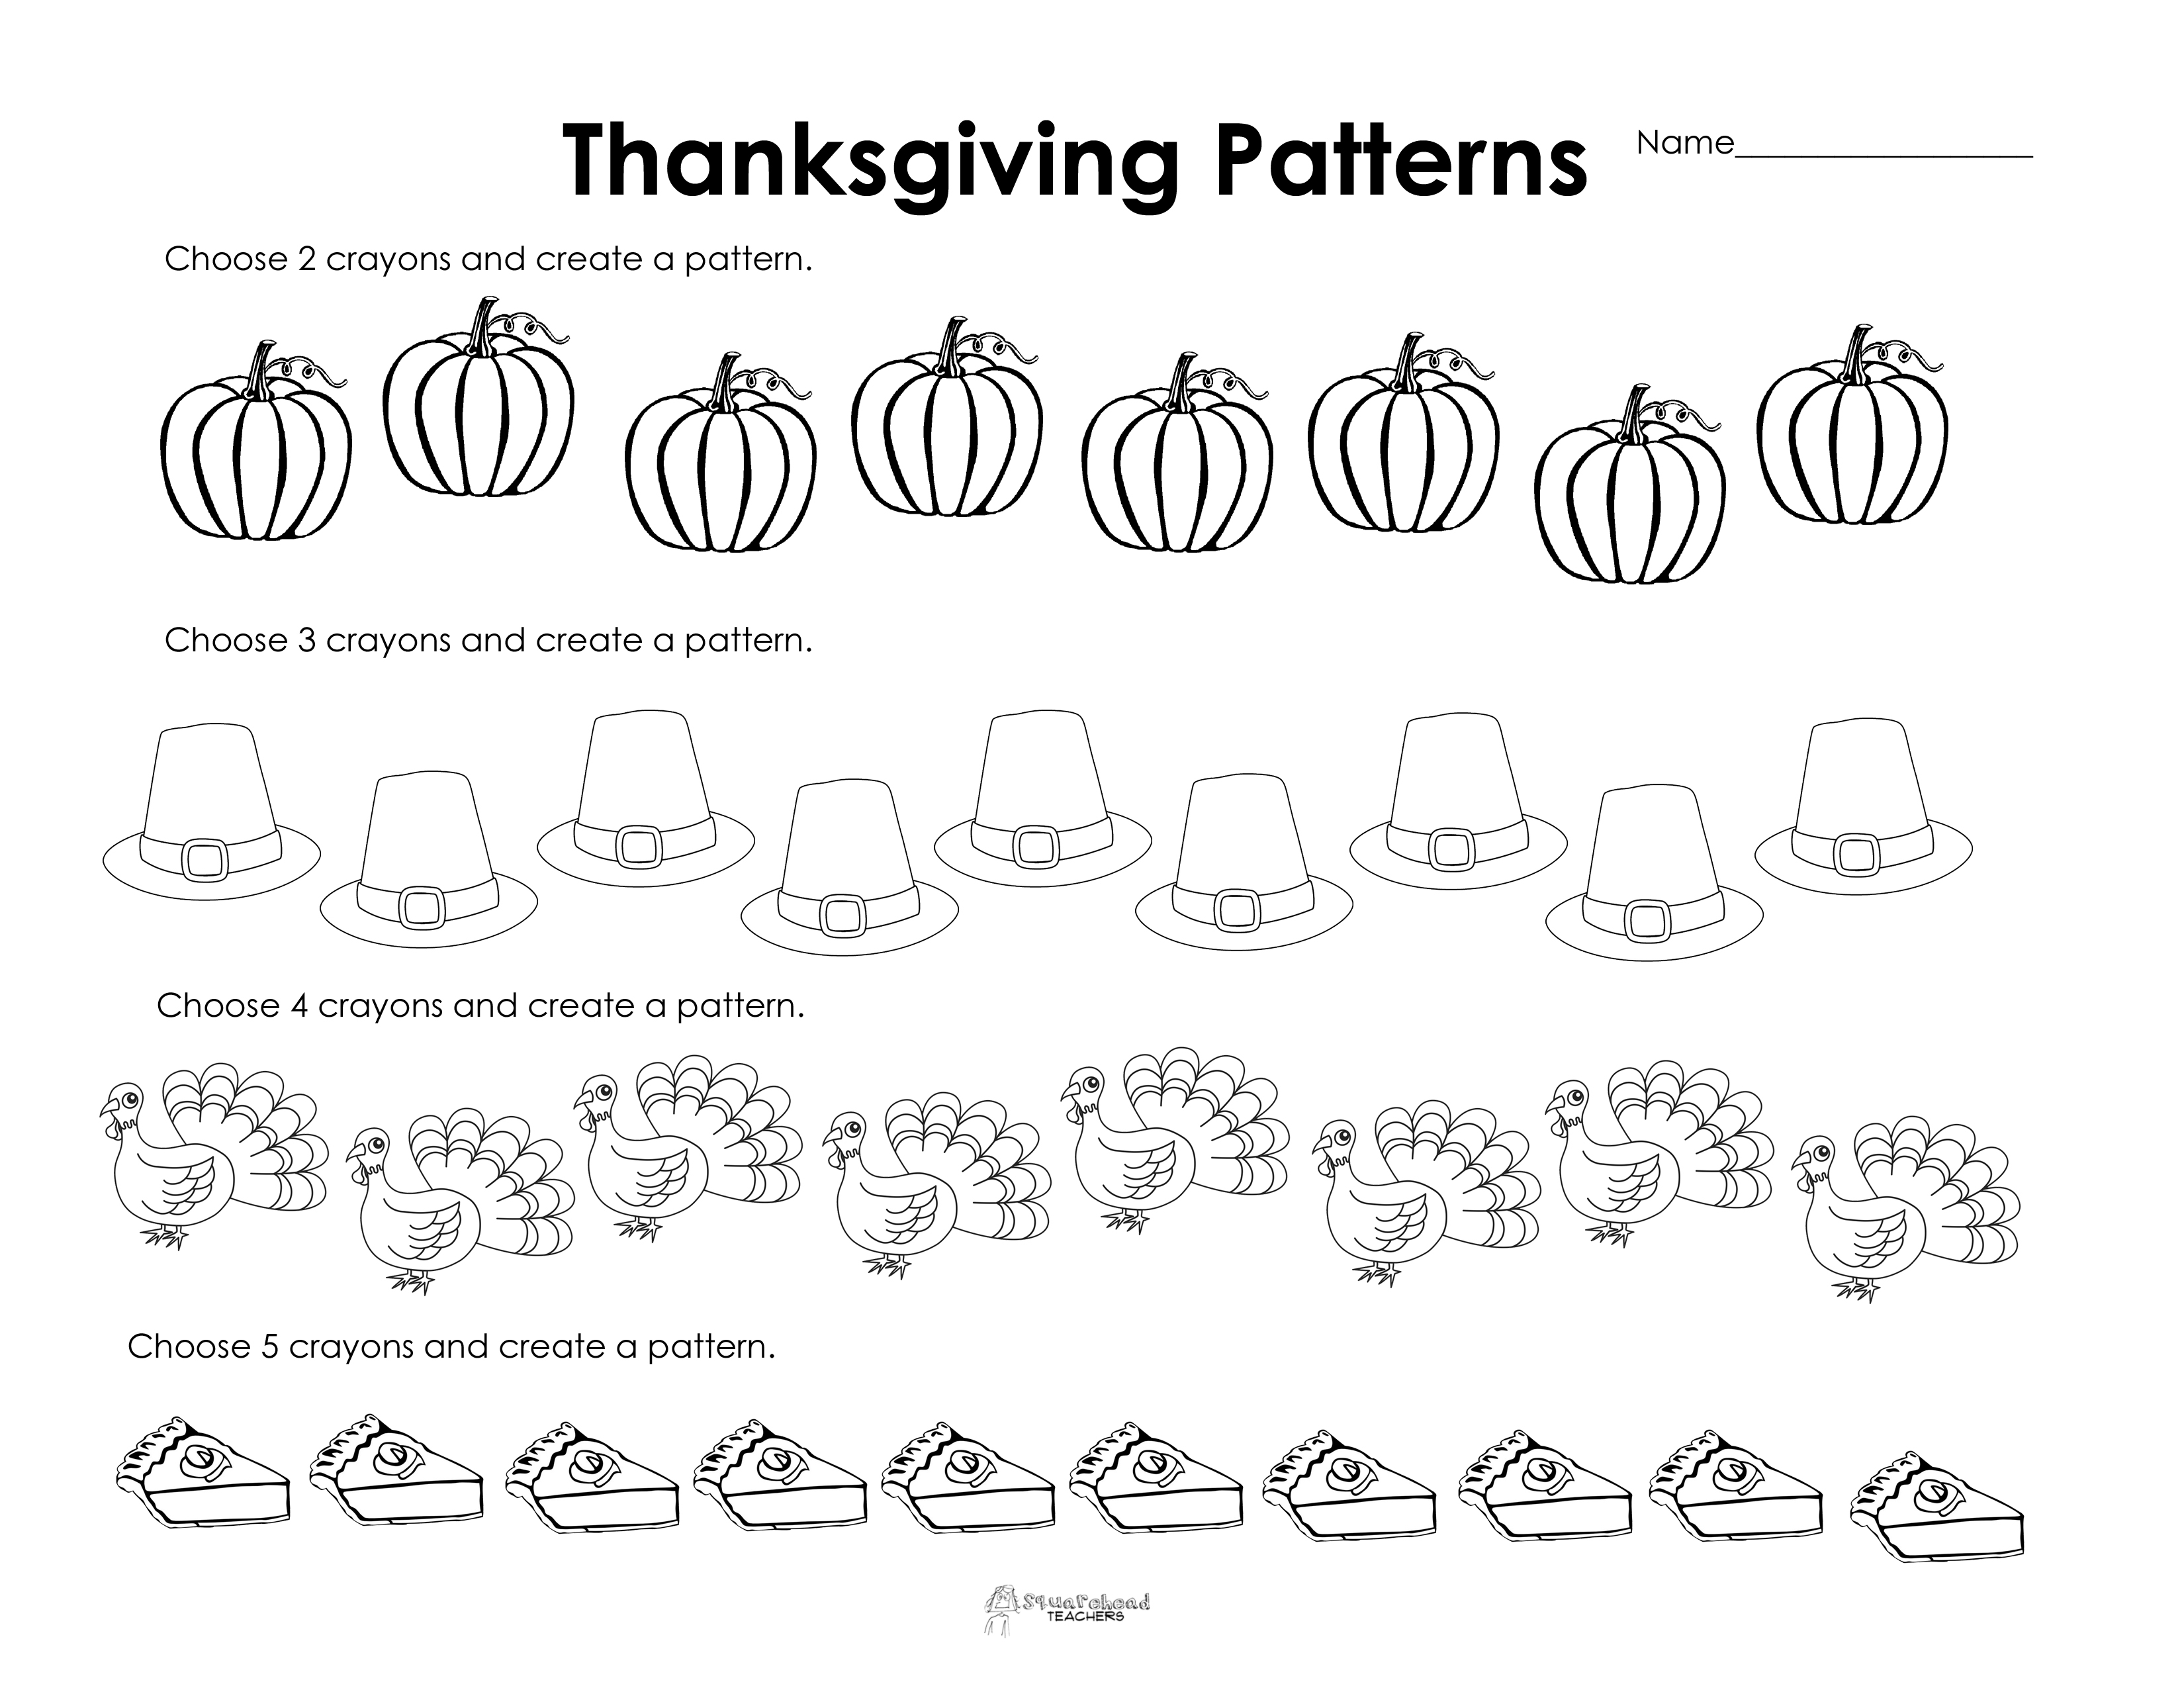 Fun Math Worksheets For Thanksgiving  117667